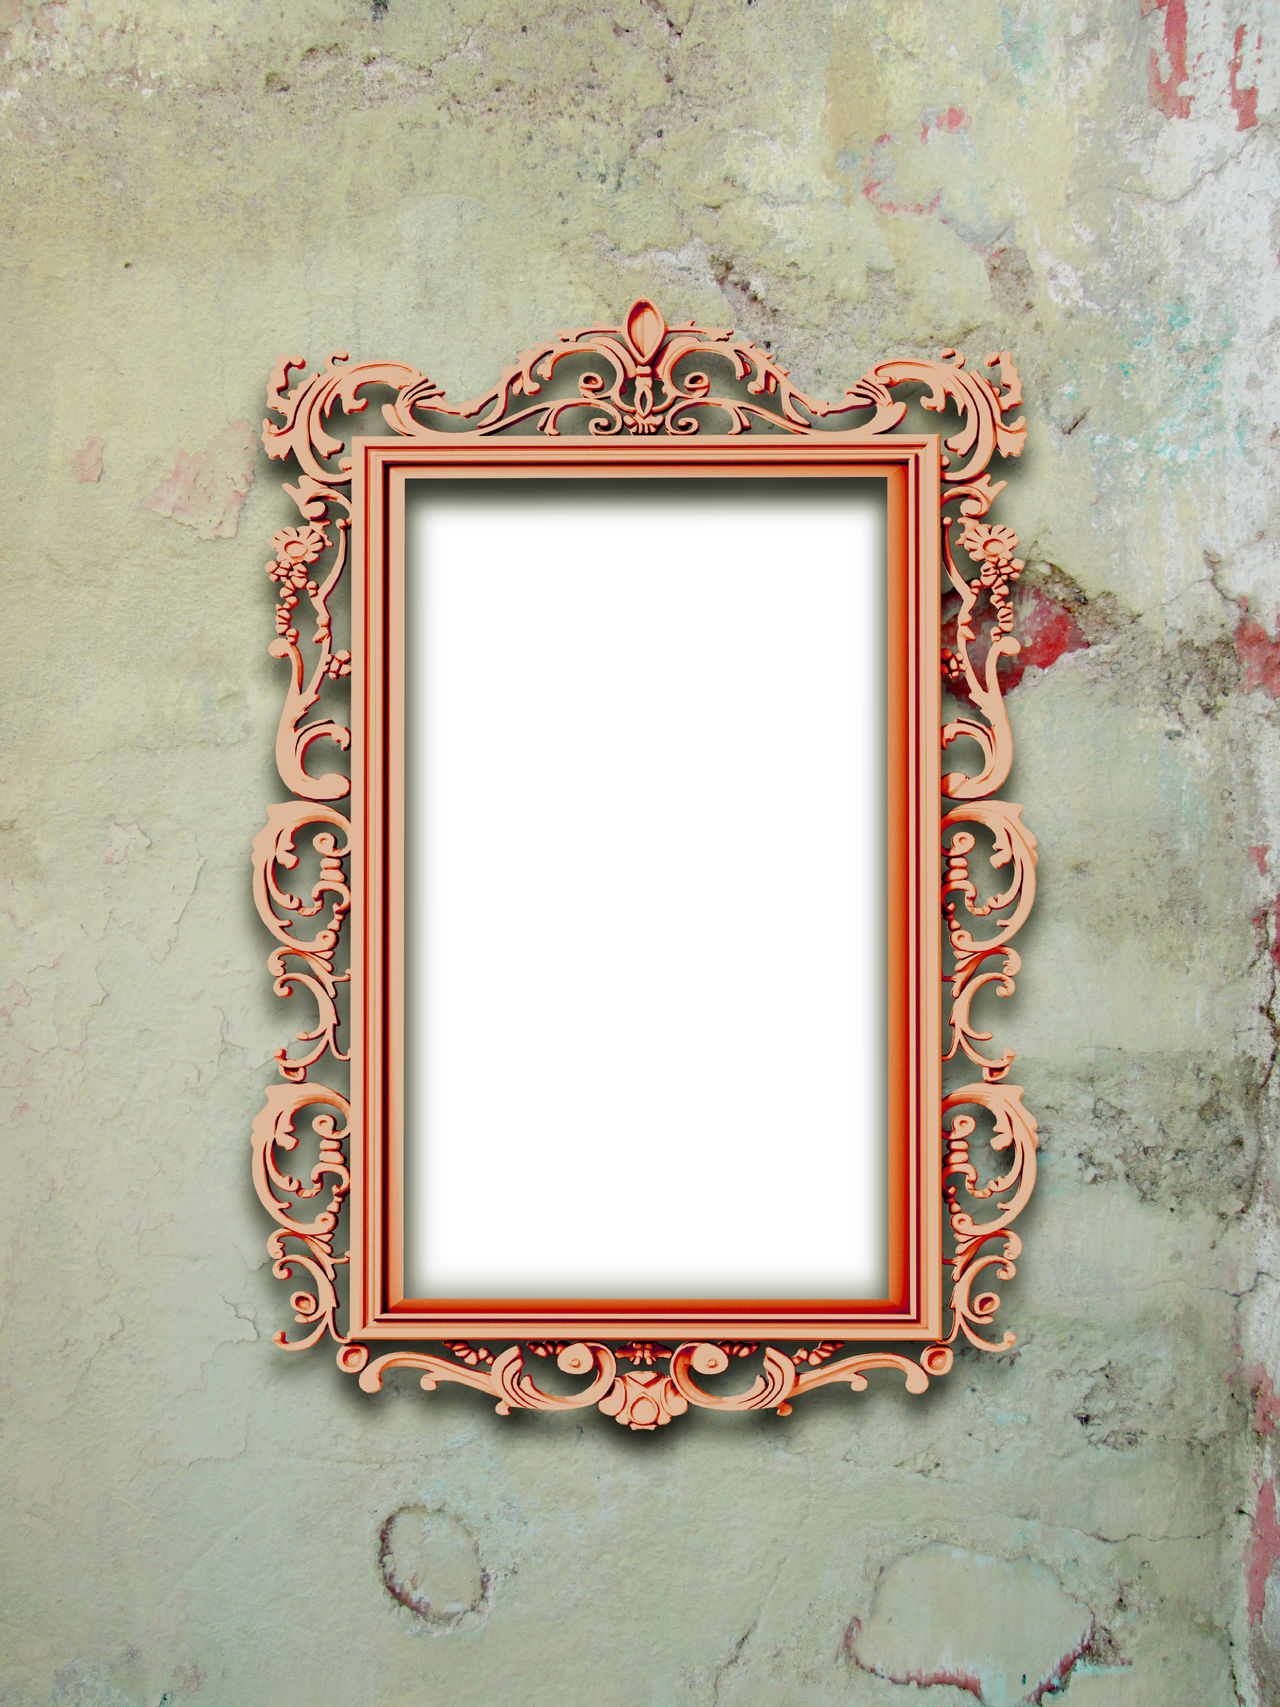 Single metal red baroque frame on scratched concrete wall background Art And Craft Art Nouveau Frame Baroque Blue Close-up Concrete Weathered Wall Creativity Indoors  Metallic Mirror Frame Old-fashioned Ornate Picture Frame Rectangular Frame Red Rococo Rough Scratched And Cracked Wall Shades Of Grey Single Vertical Metal Frame Stains Wall - Building Feature